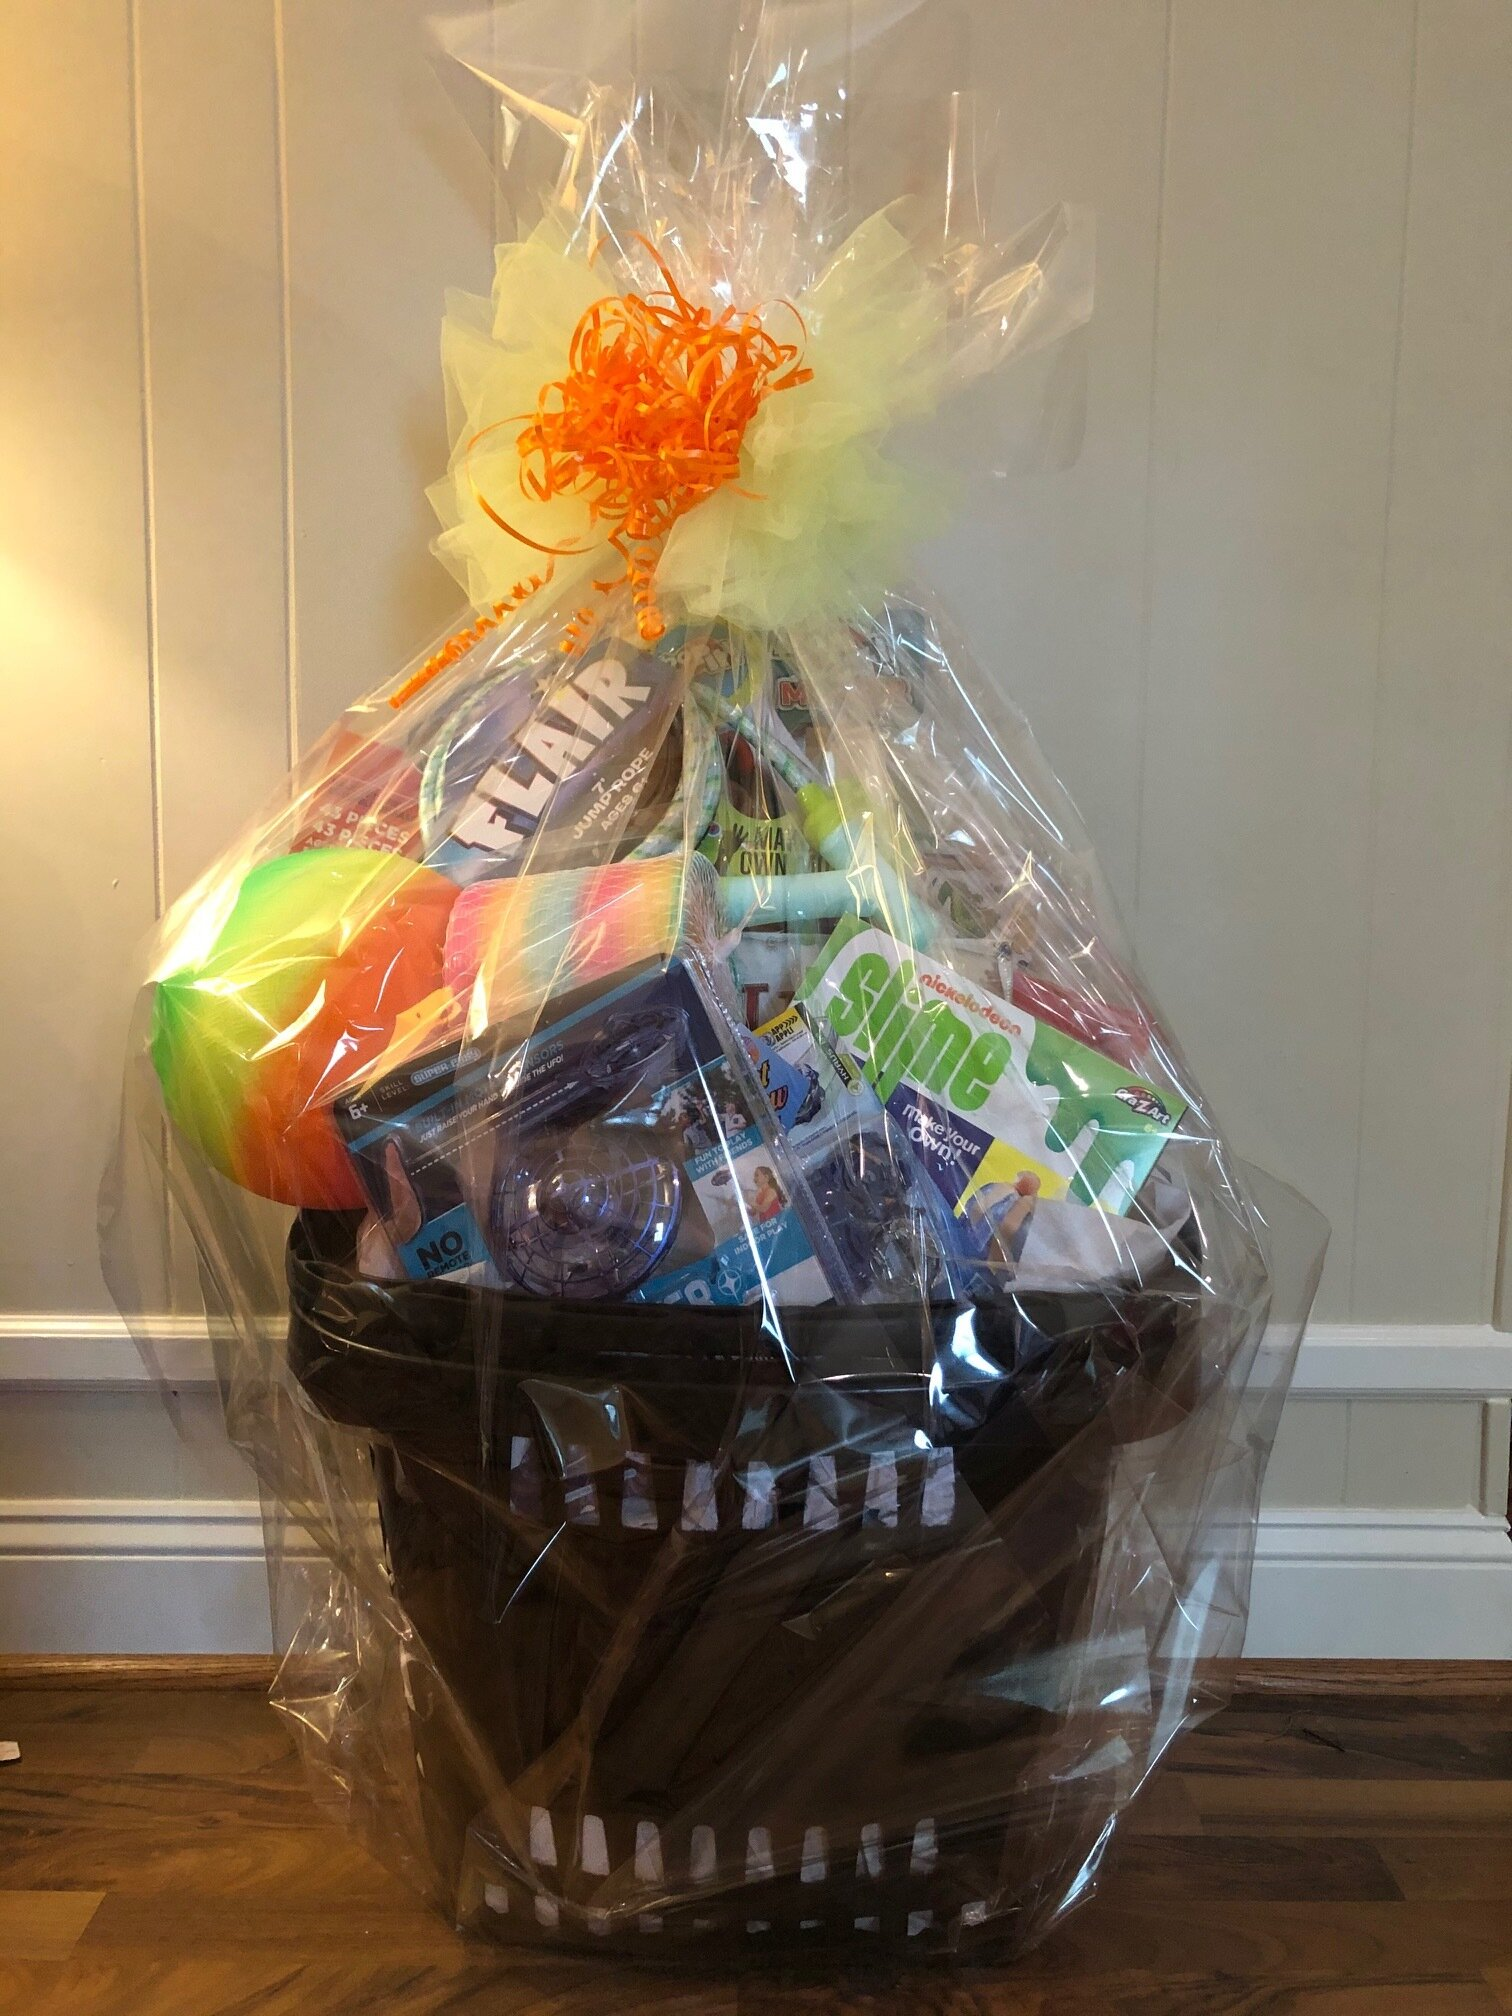 GENERAL TOY BASKET   Toys for everyone! This multi-purpose rolling basket includes a large box of Magformers, Hover Star drone, Galactic Slime, Bop-it, giant Slinky, Beyblade, stickers, bouncy ball, jump rope, and Ticket to Ride game.  DONOR: Kindergarten Classes VALUE: $134